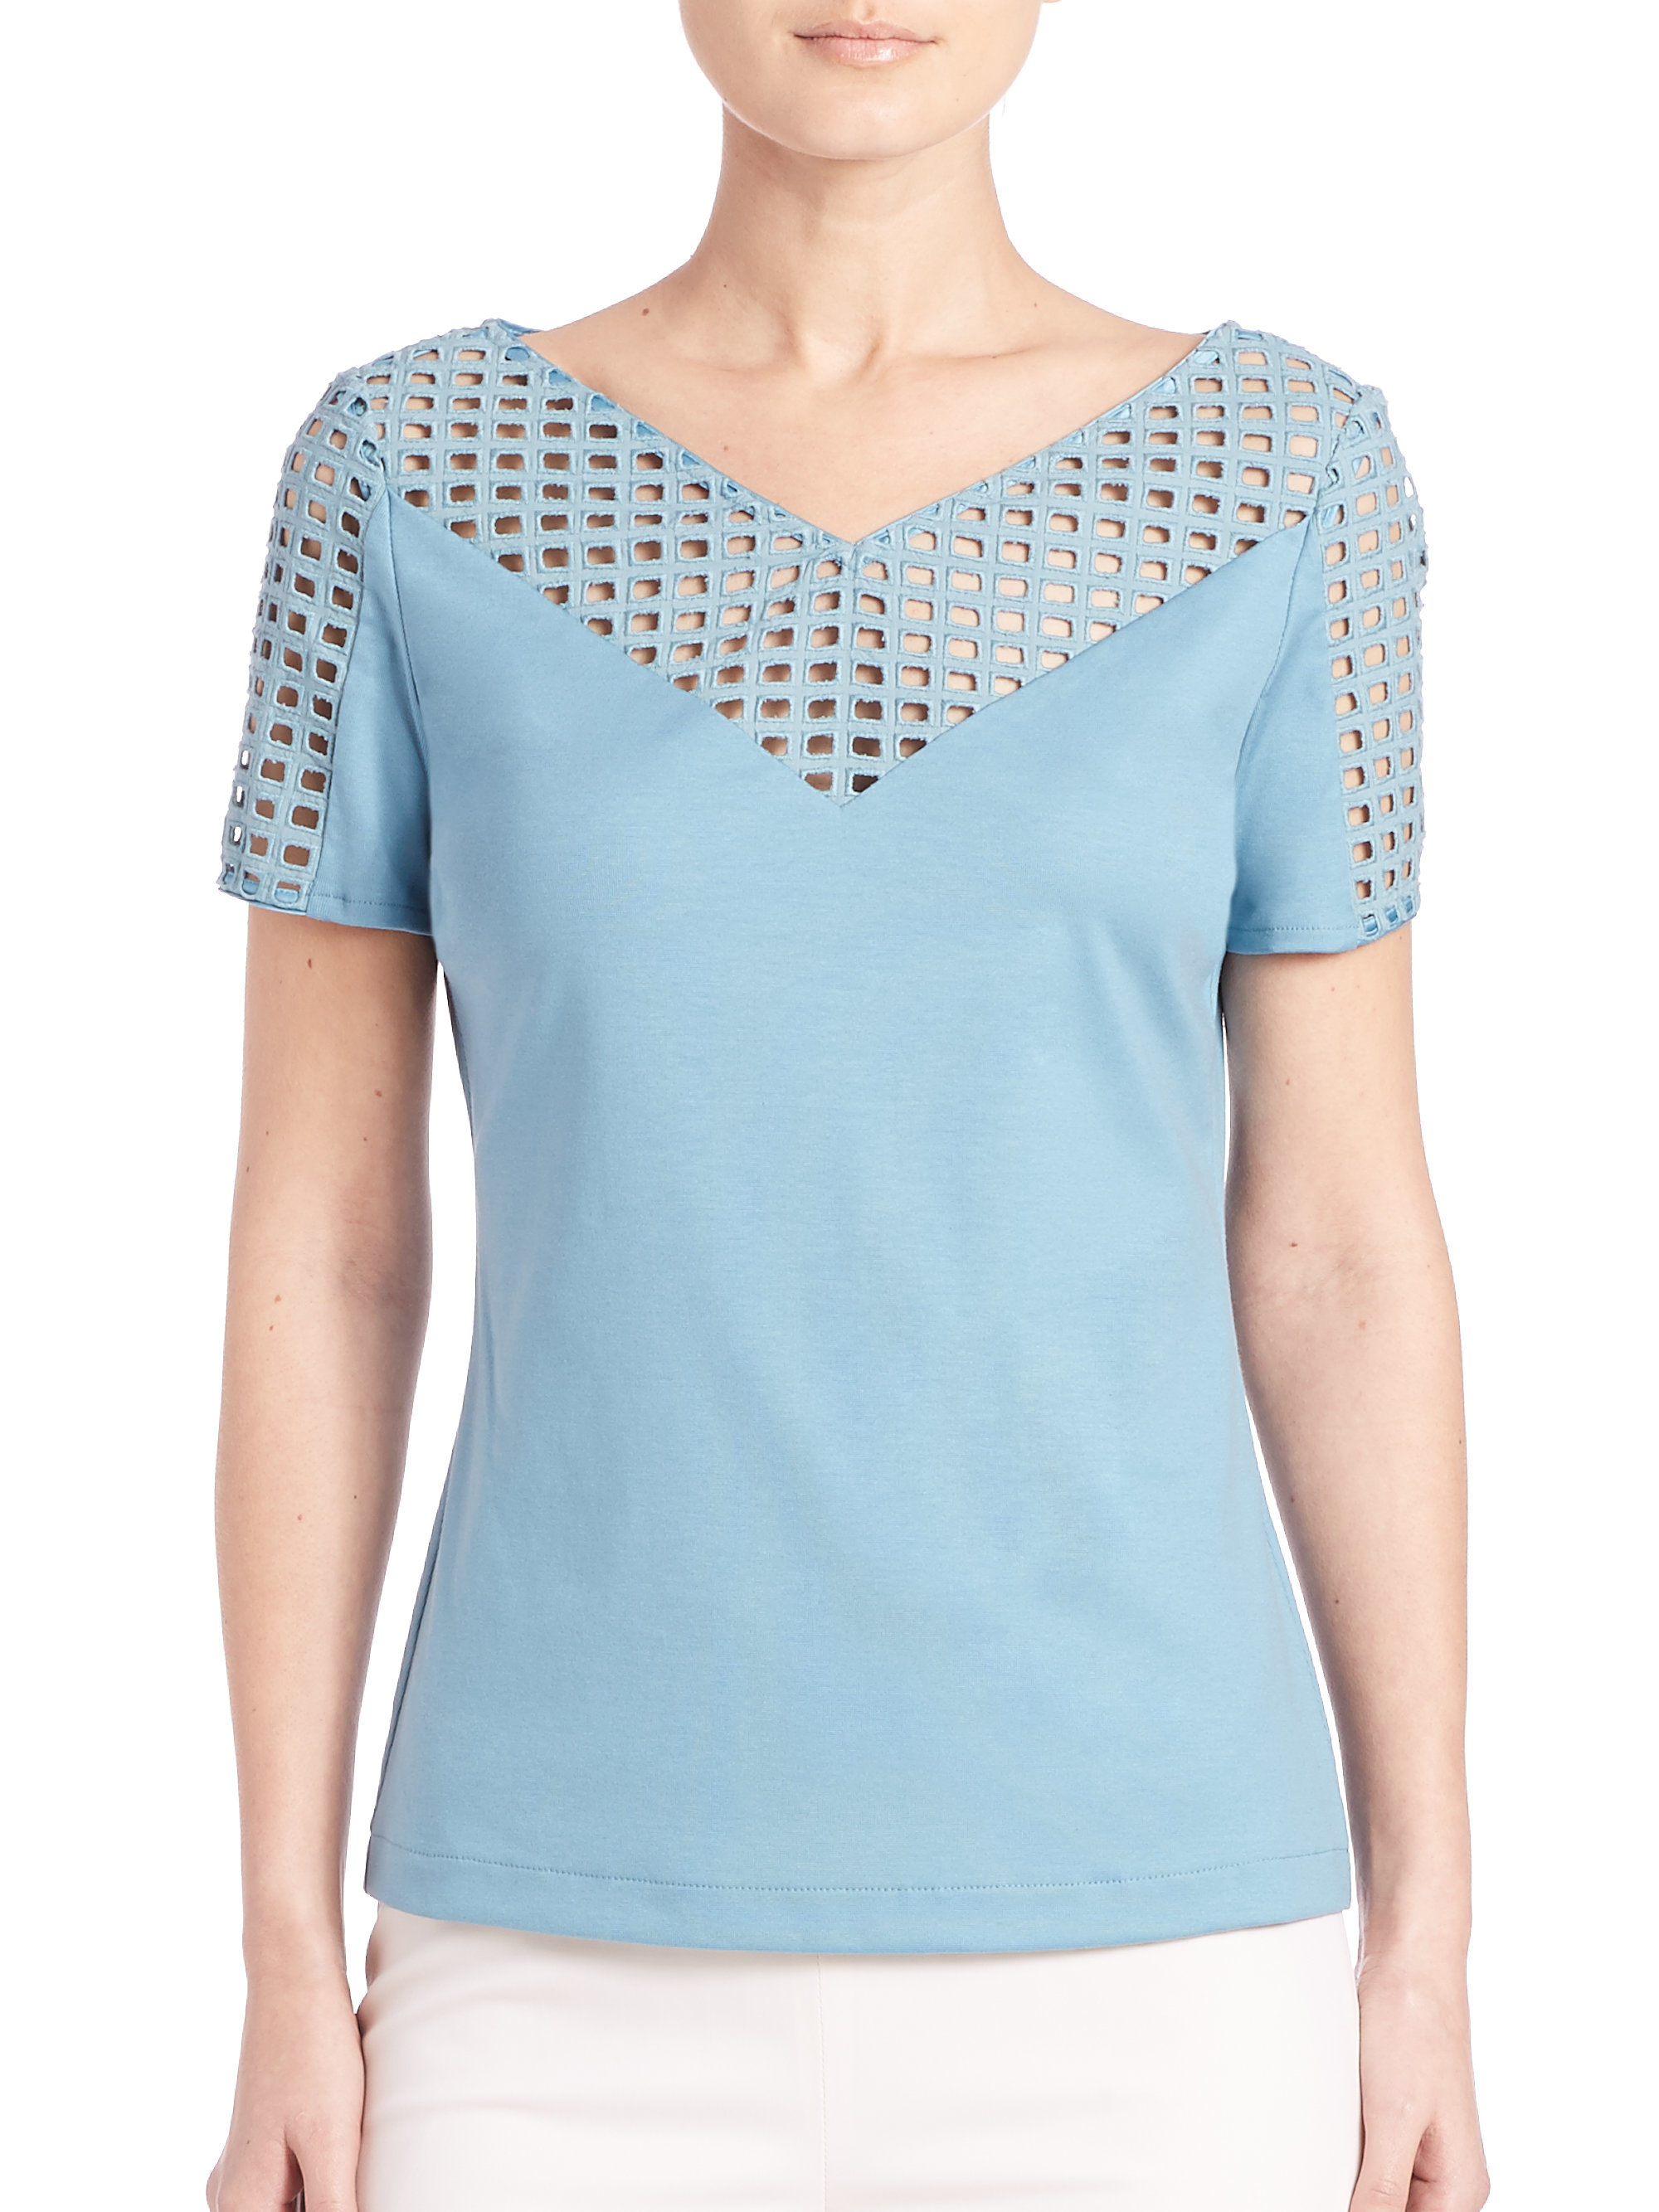 148 Best Images About Fingernail Art On Pinterest: Lafayette 148 New York Perforated Top In Blue